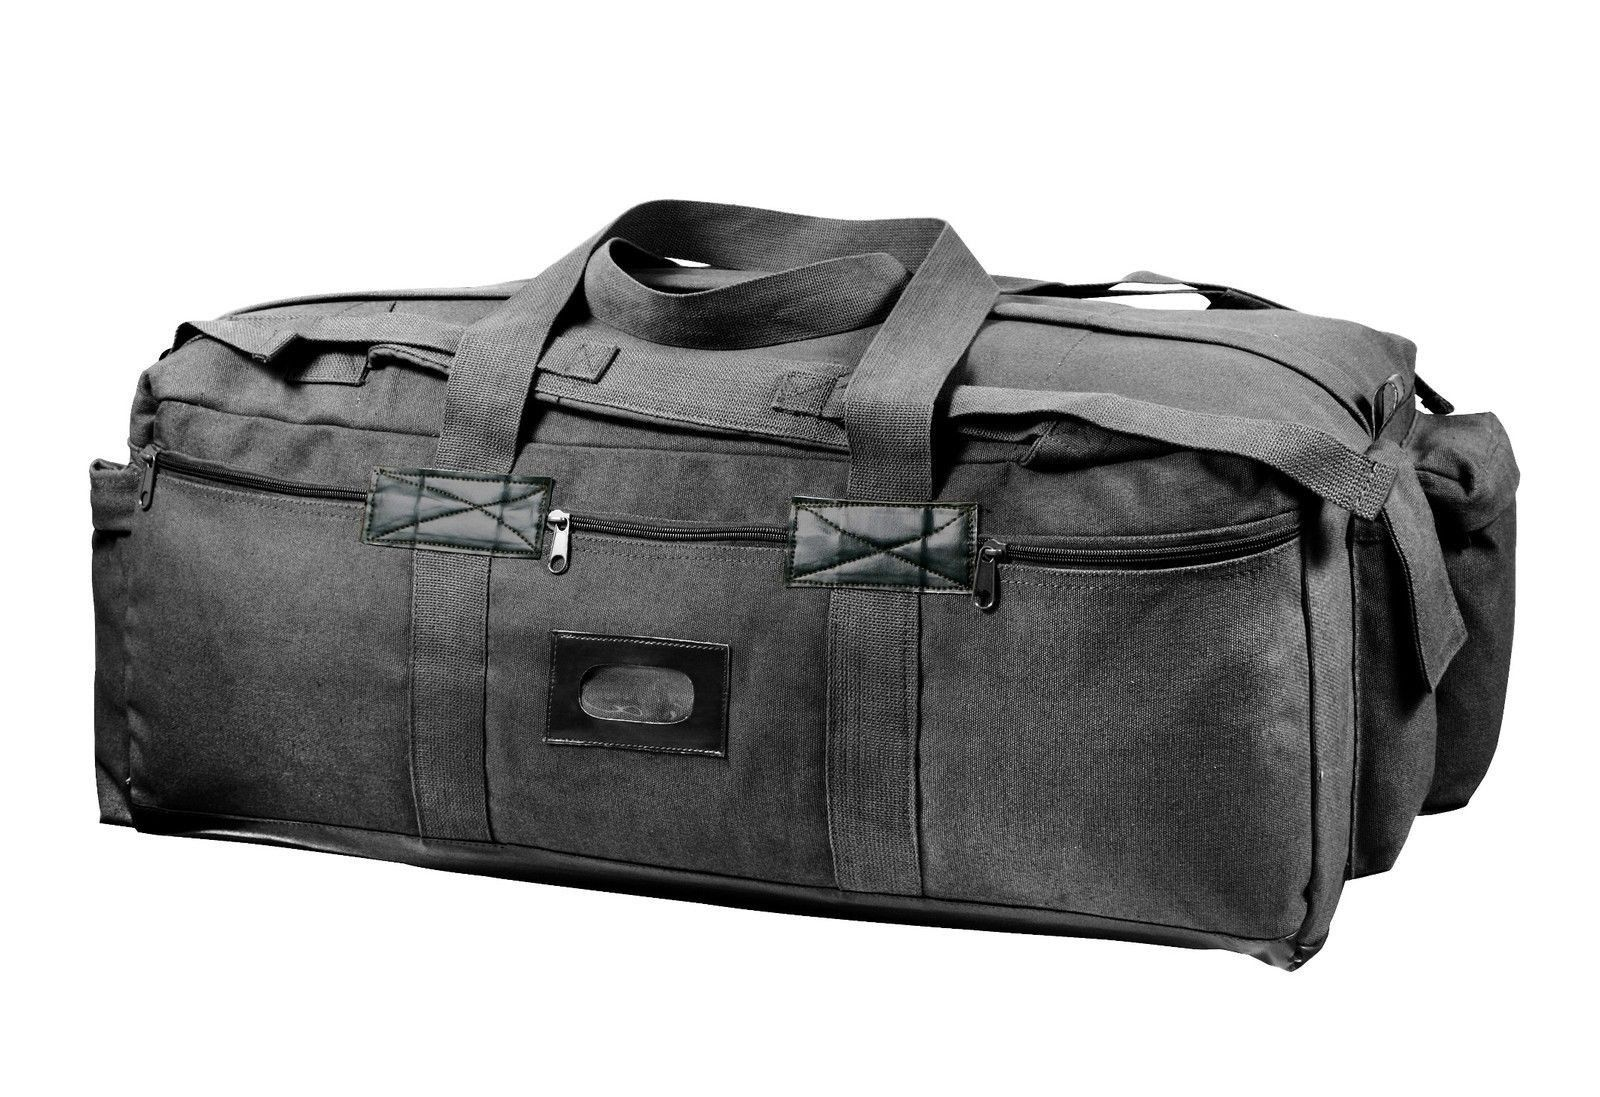 faca8249c648 Tactical Duffle Bag With Backpack Straps- Fenix Toulouse Handball